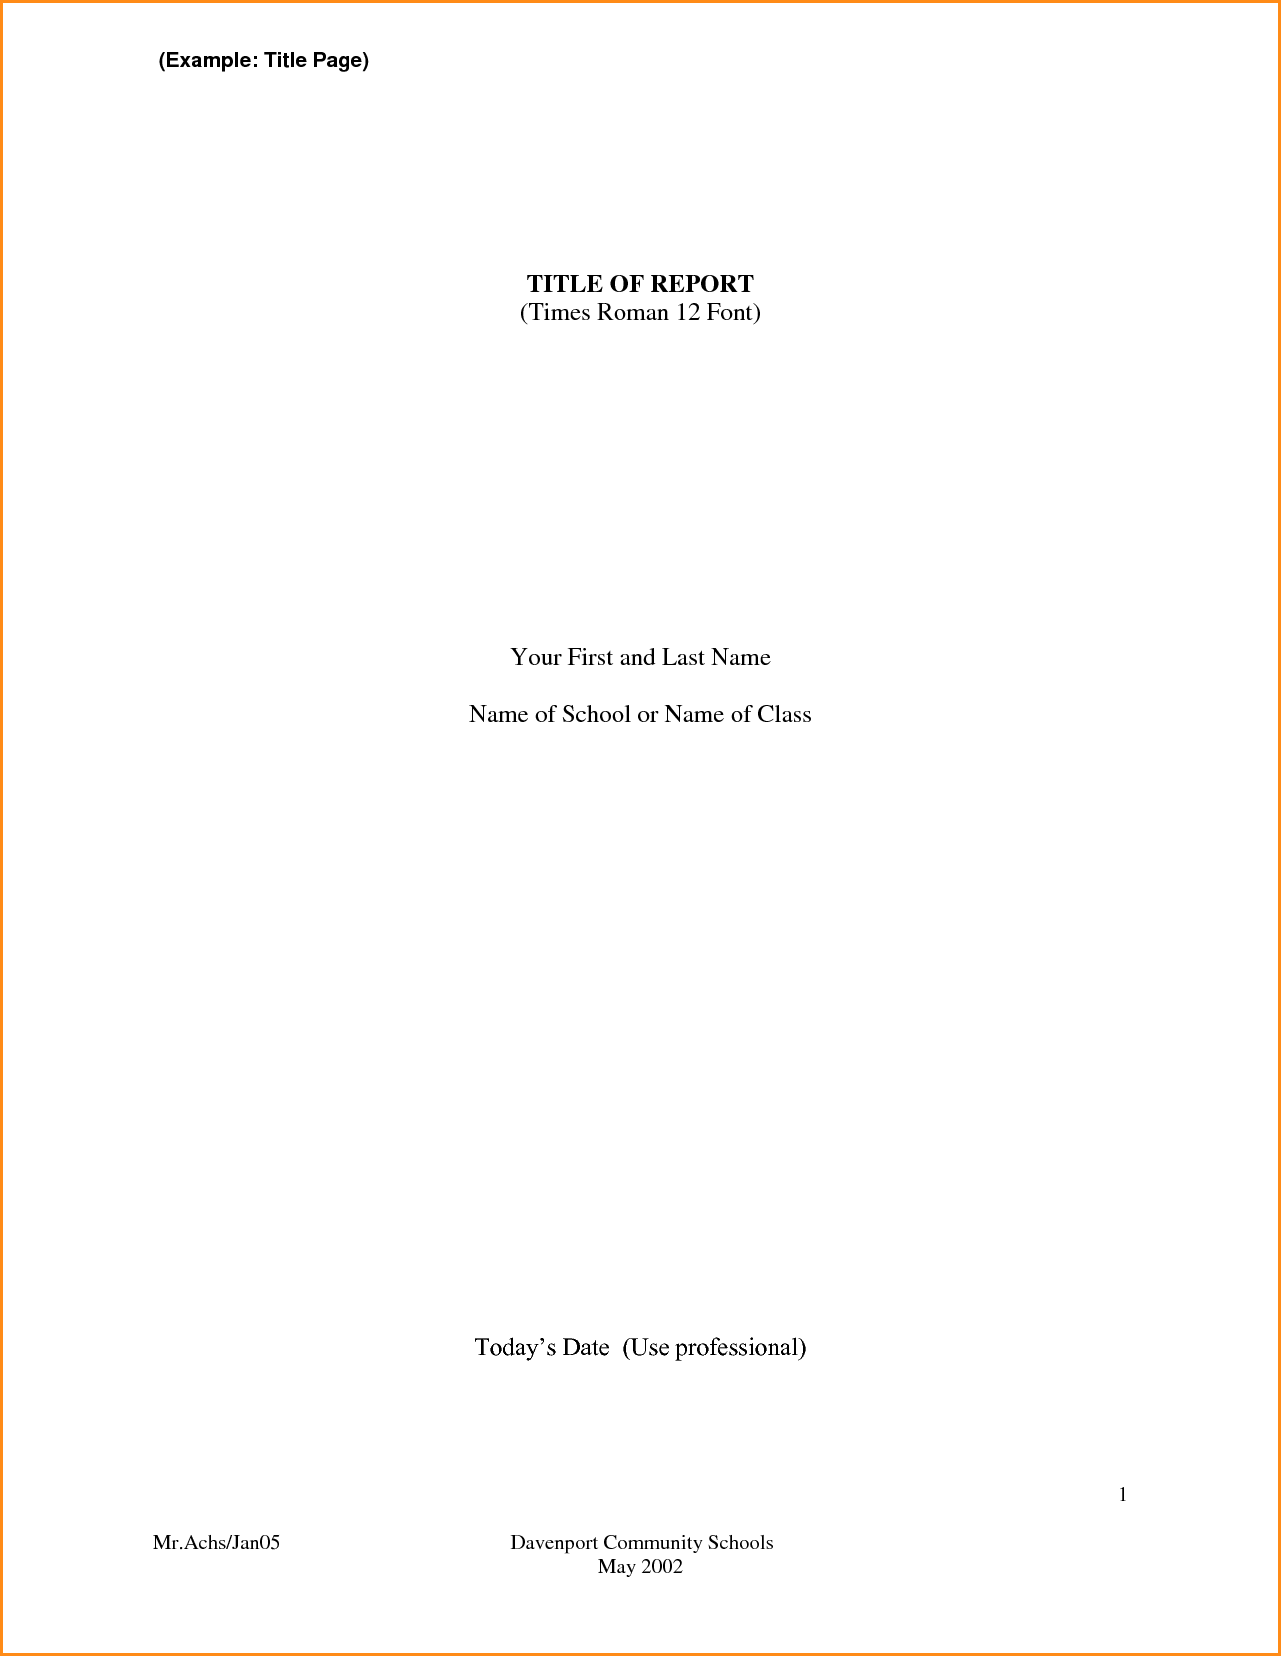 how to create a title page